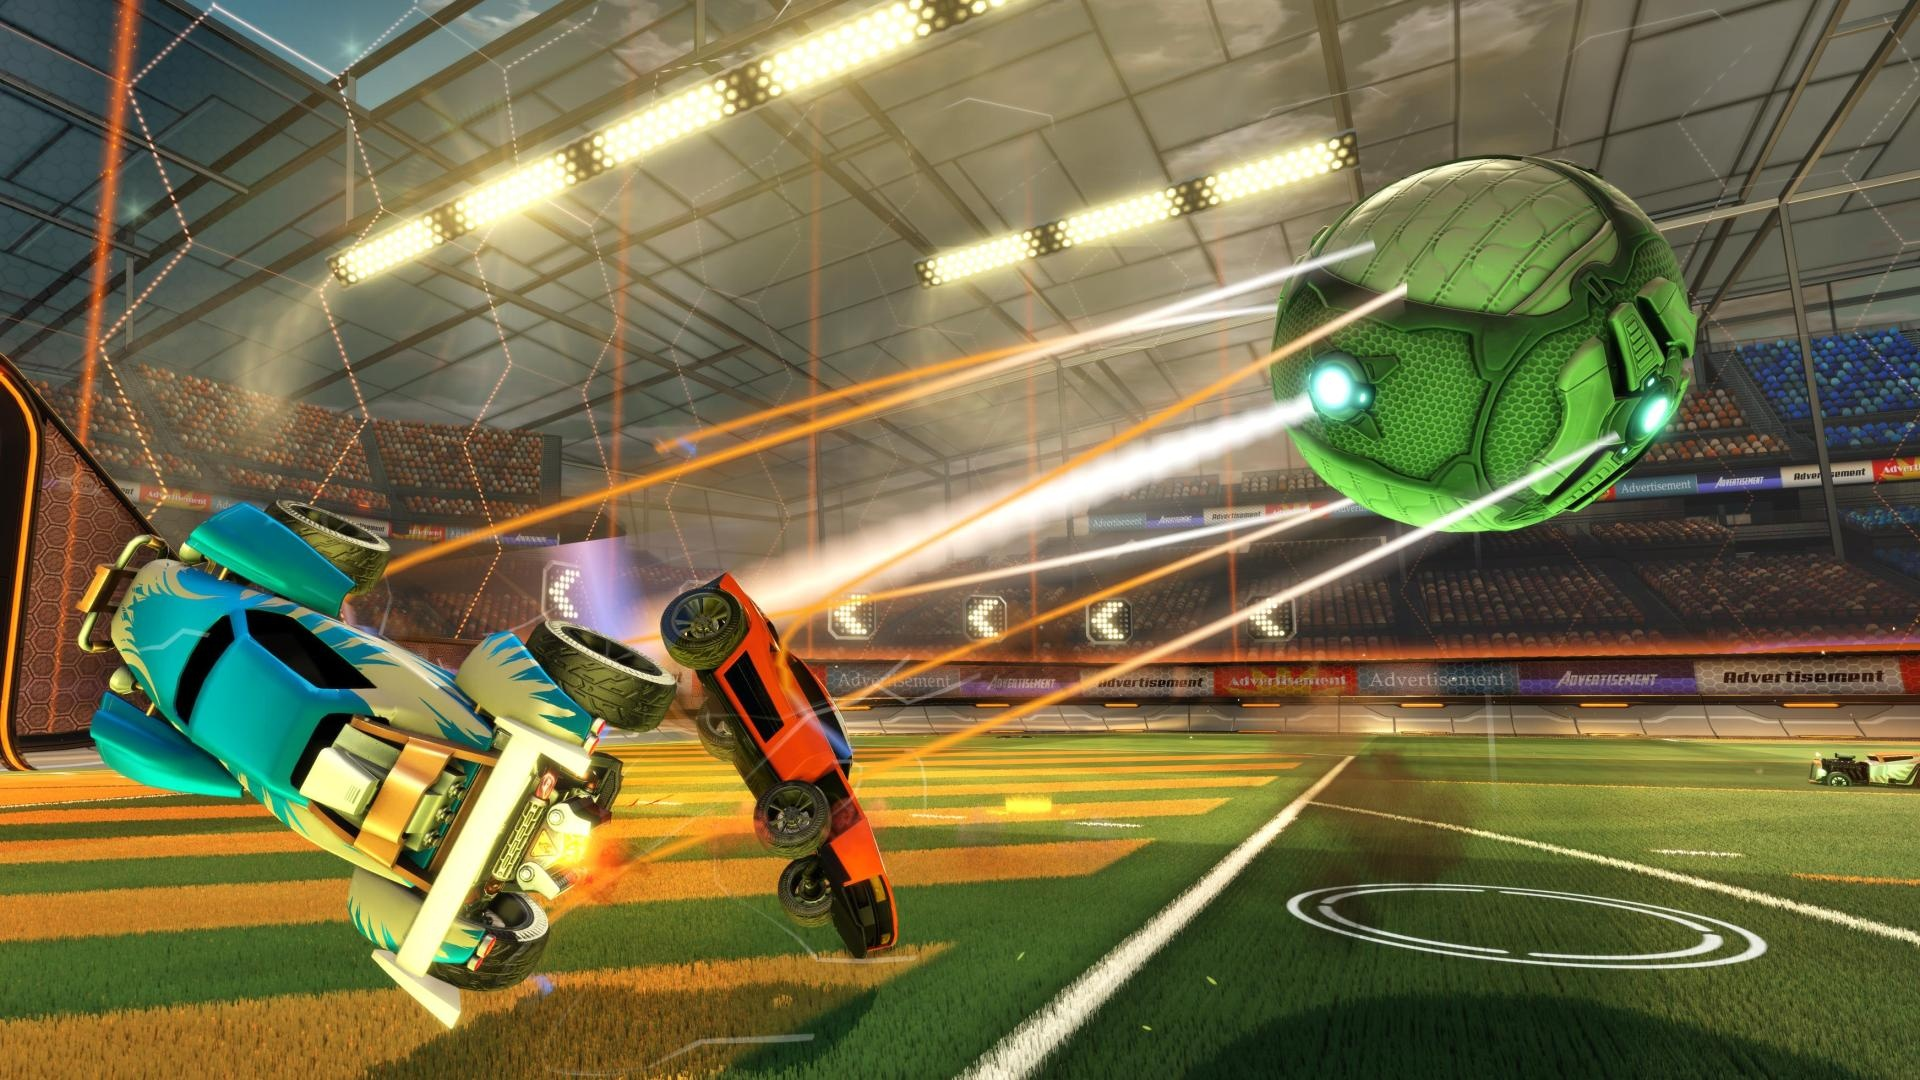 Xbox One Soccer Car Game